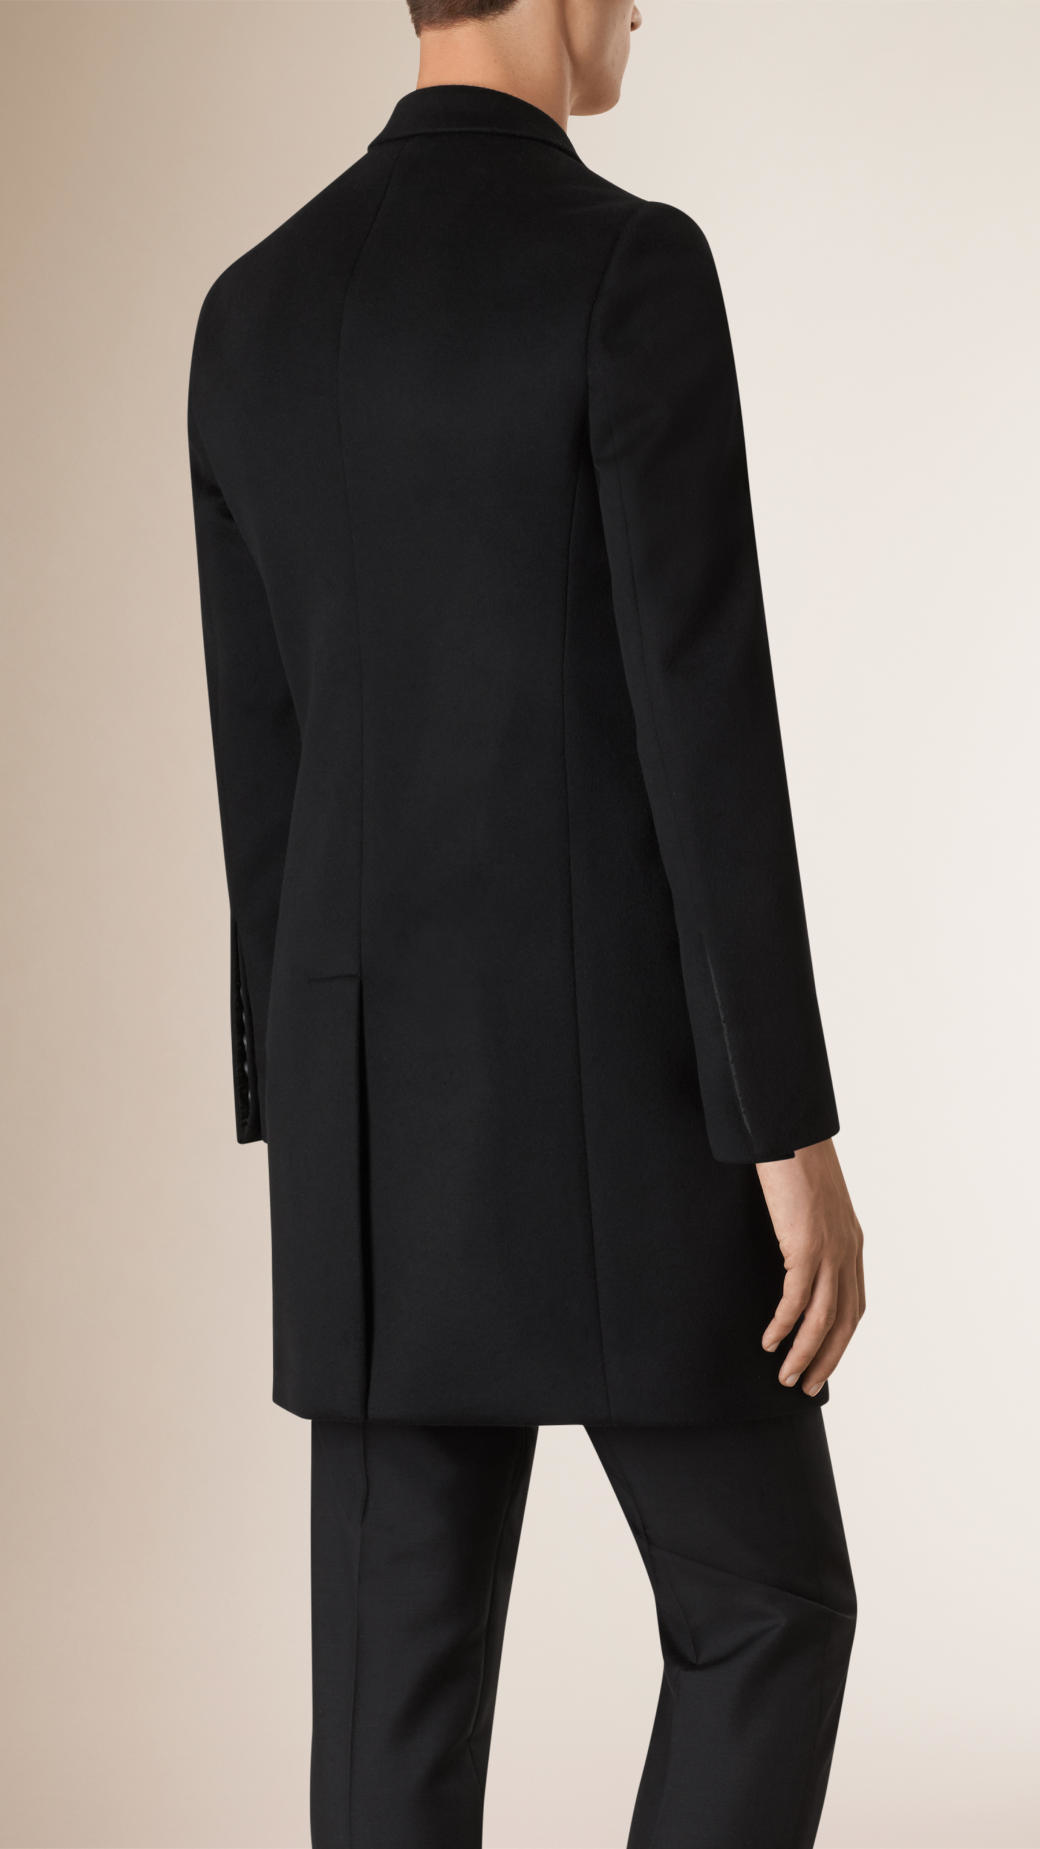 Burberry Double-breasted Unlined Cashmere Wool Coat in Black for